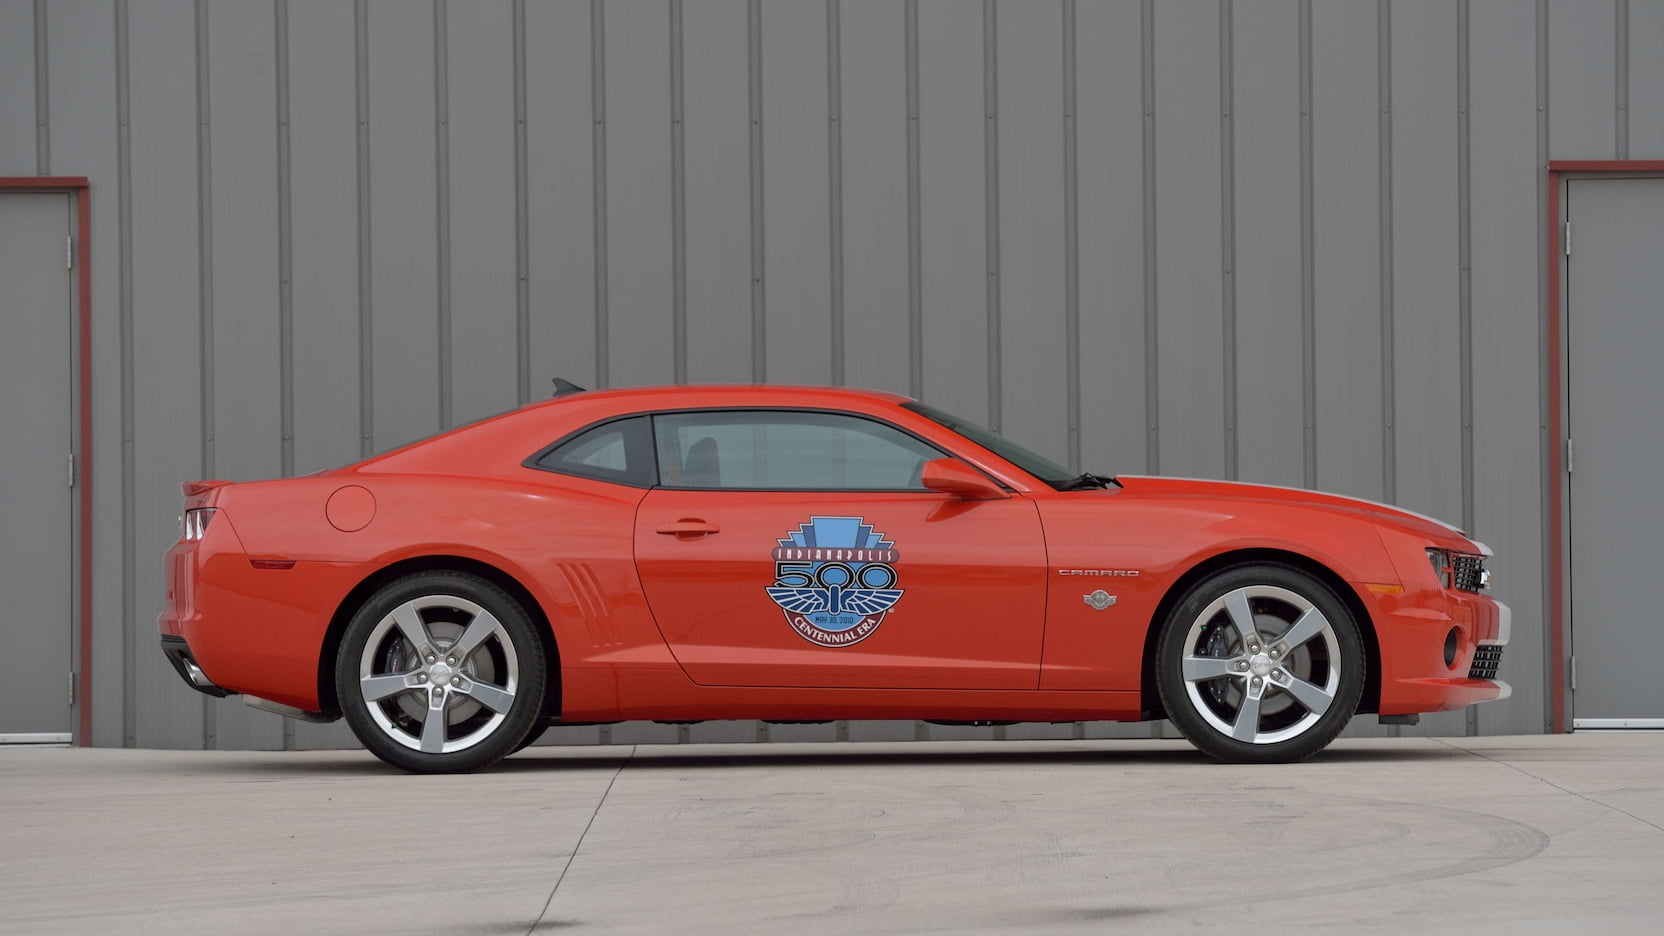 2010 Chevrolet Camaro SS Pace Car Edition Side passenger